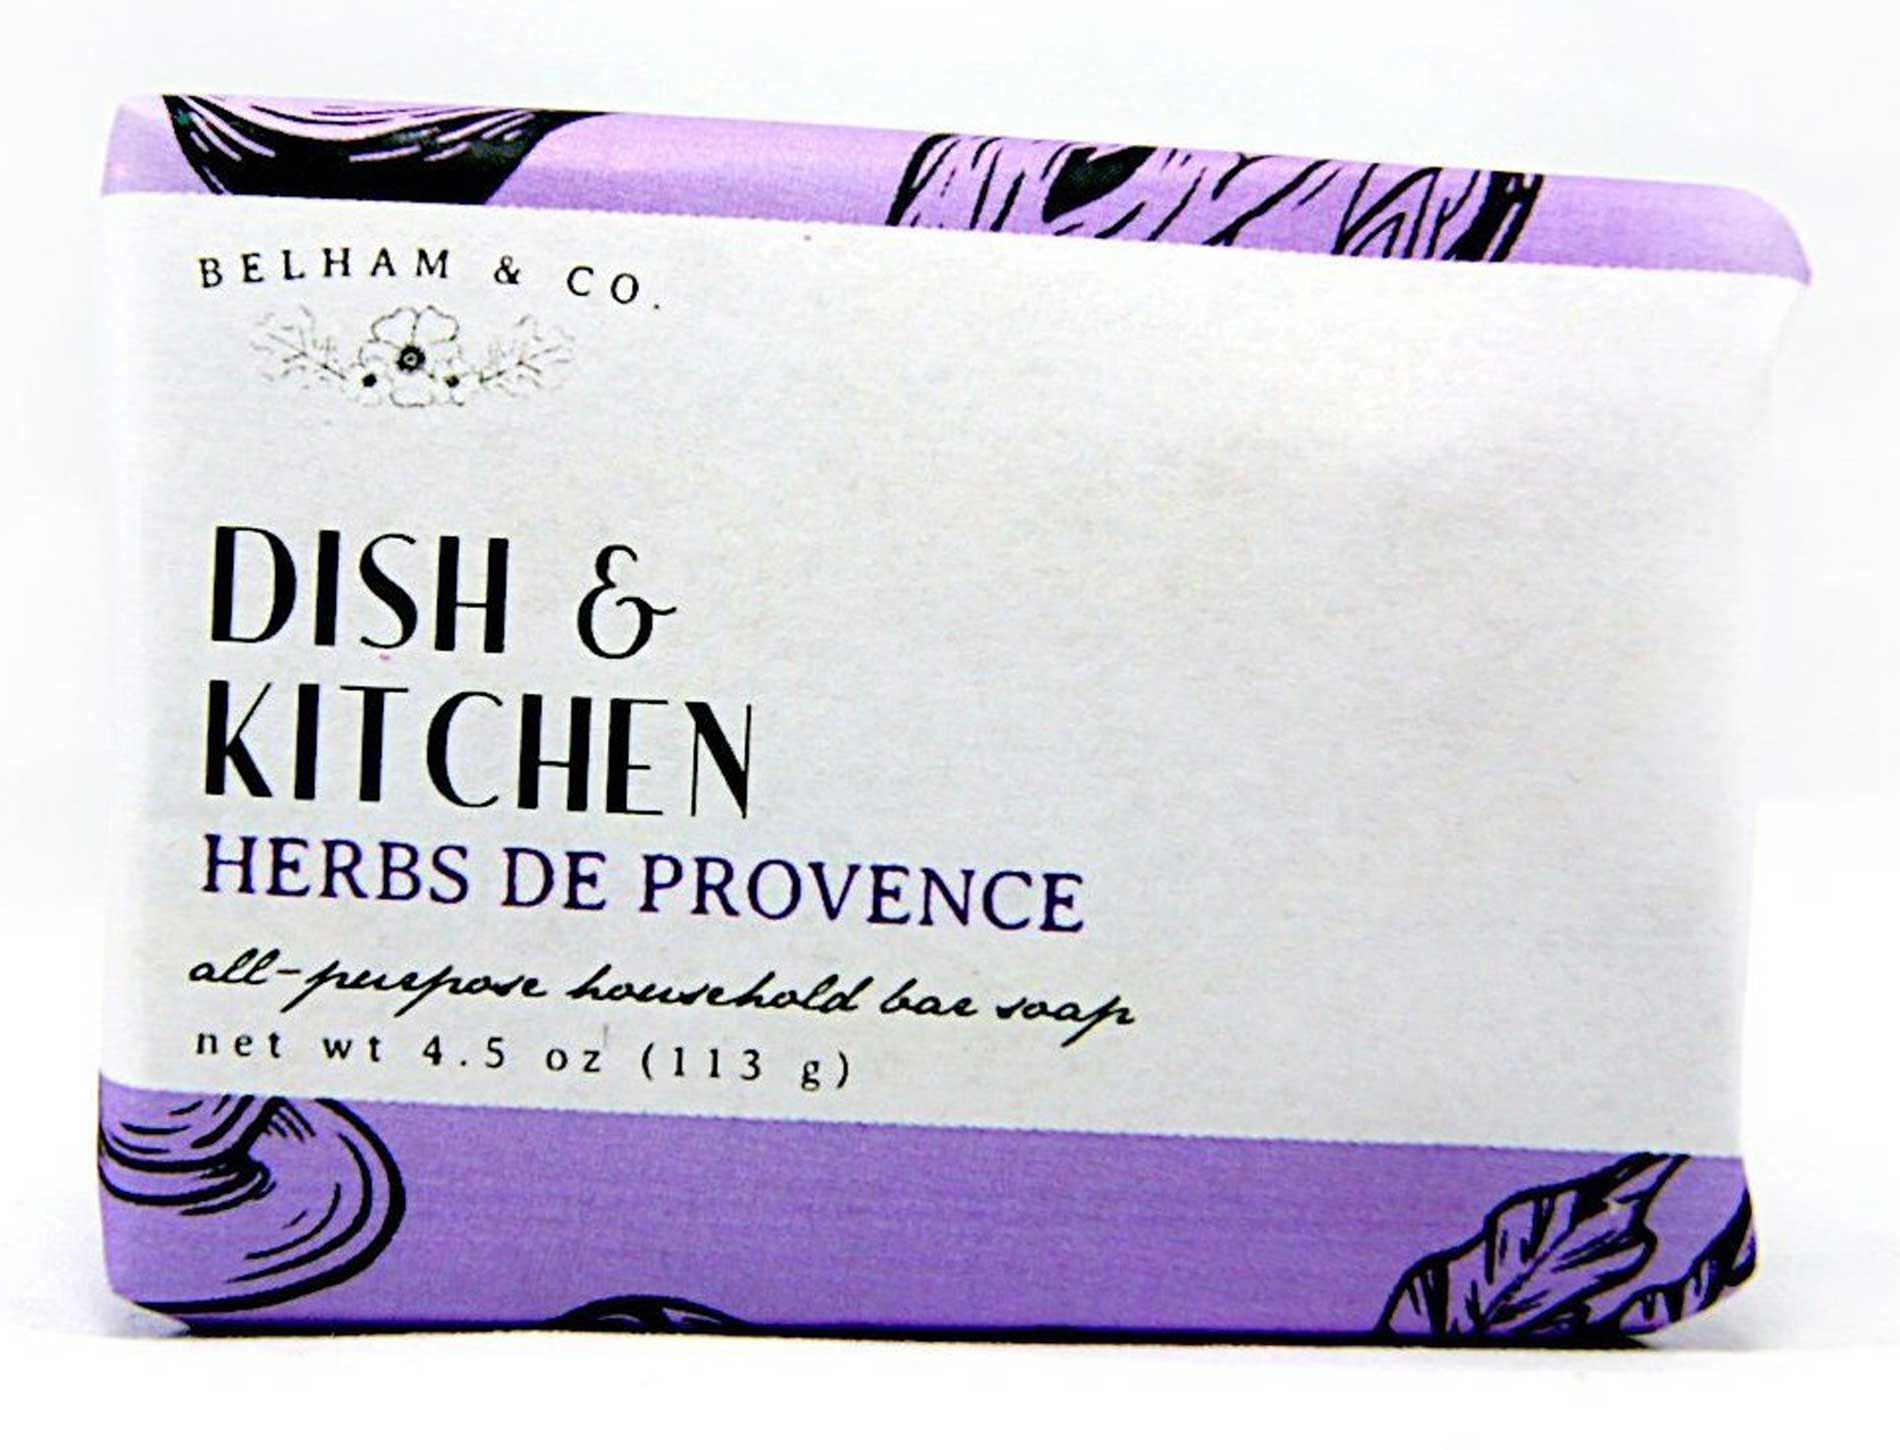 DISH & KITCHEN Bar - Herbs de Provence